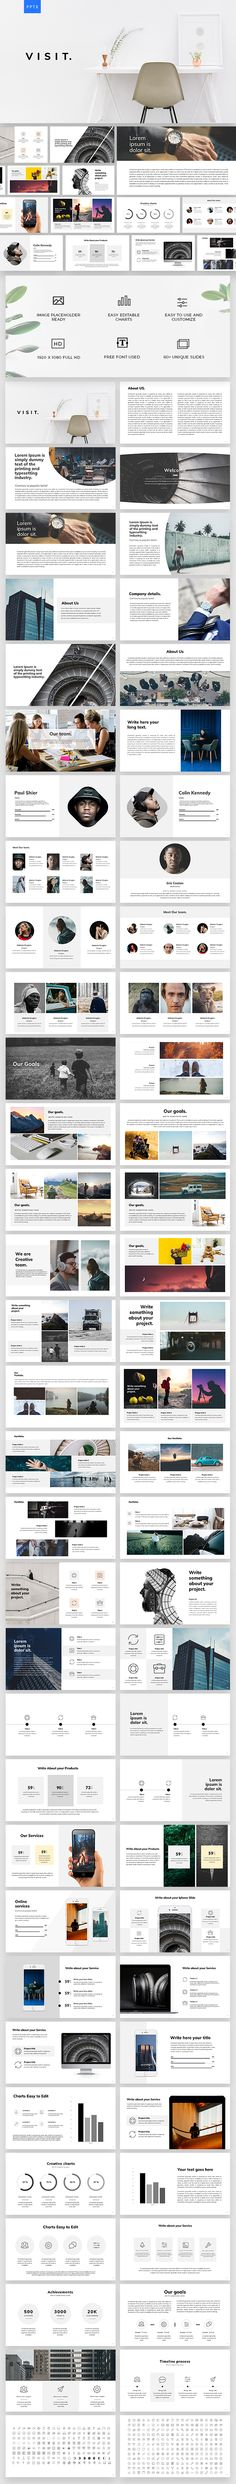 Visit Powerpoint Template — Powerpoint PPTX #business #cool powerpoint templates • Download ➝ https://graphicriver.net/item/visit-powerpoint-template/21408812?ref=pxcr